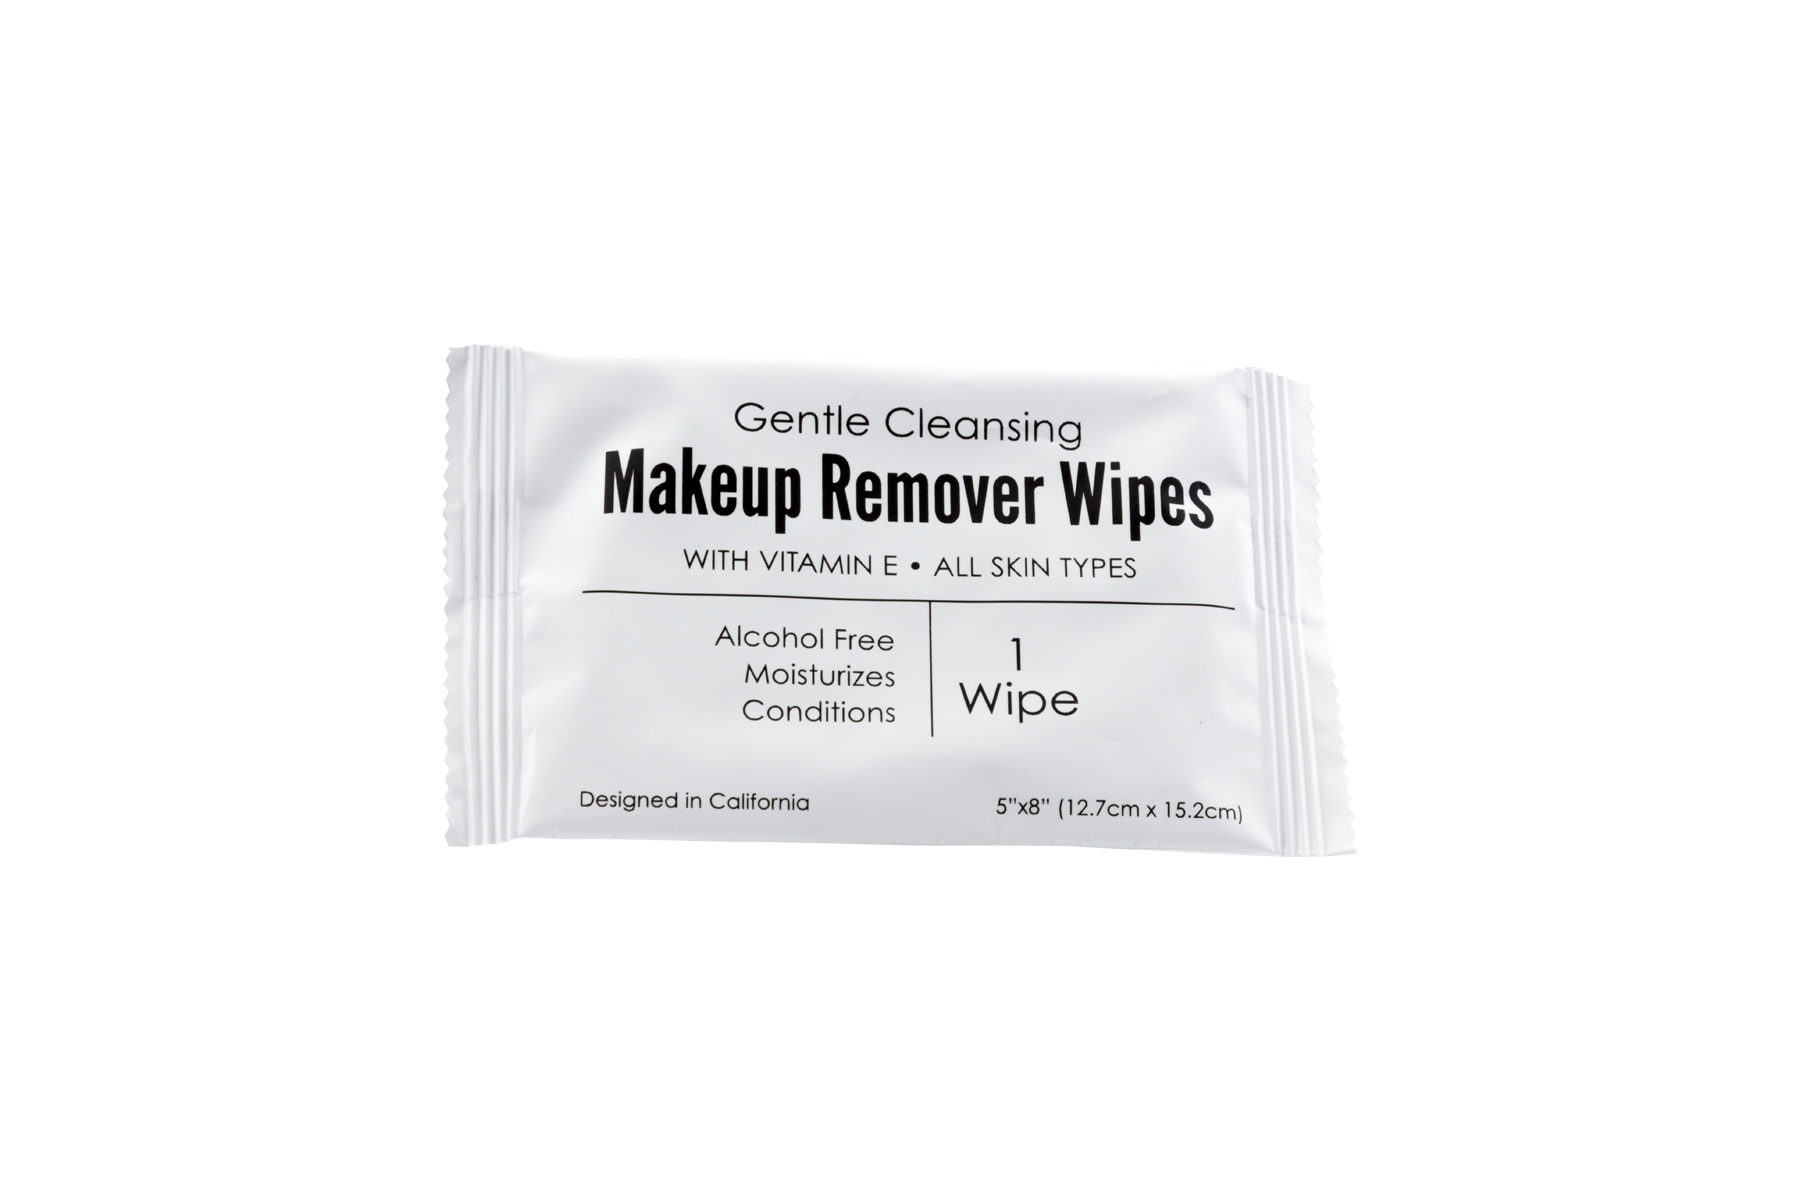 Make-up Remover Wipe/Towelette Wipes, Gentle Cleansing, With Vitamin E, Alcohol Free, (Case of 500)-low as $0.137 each.